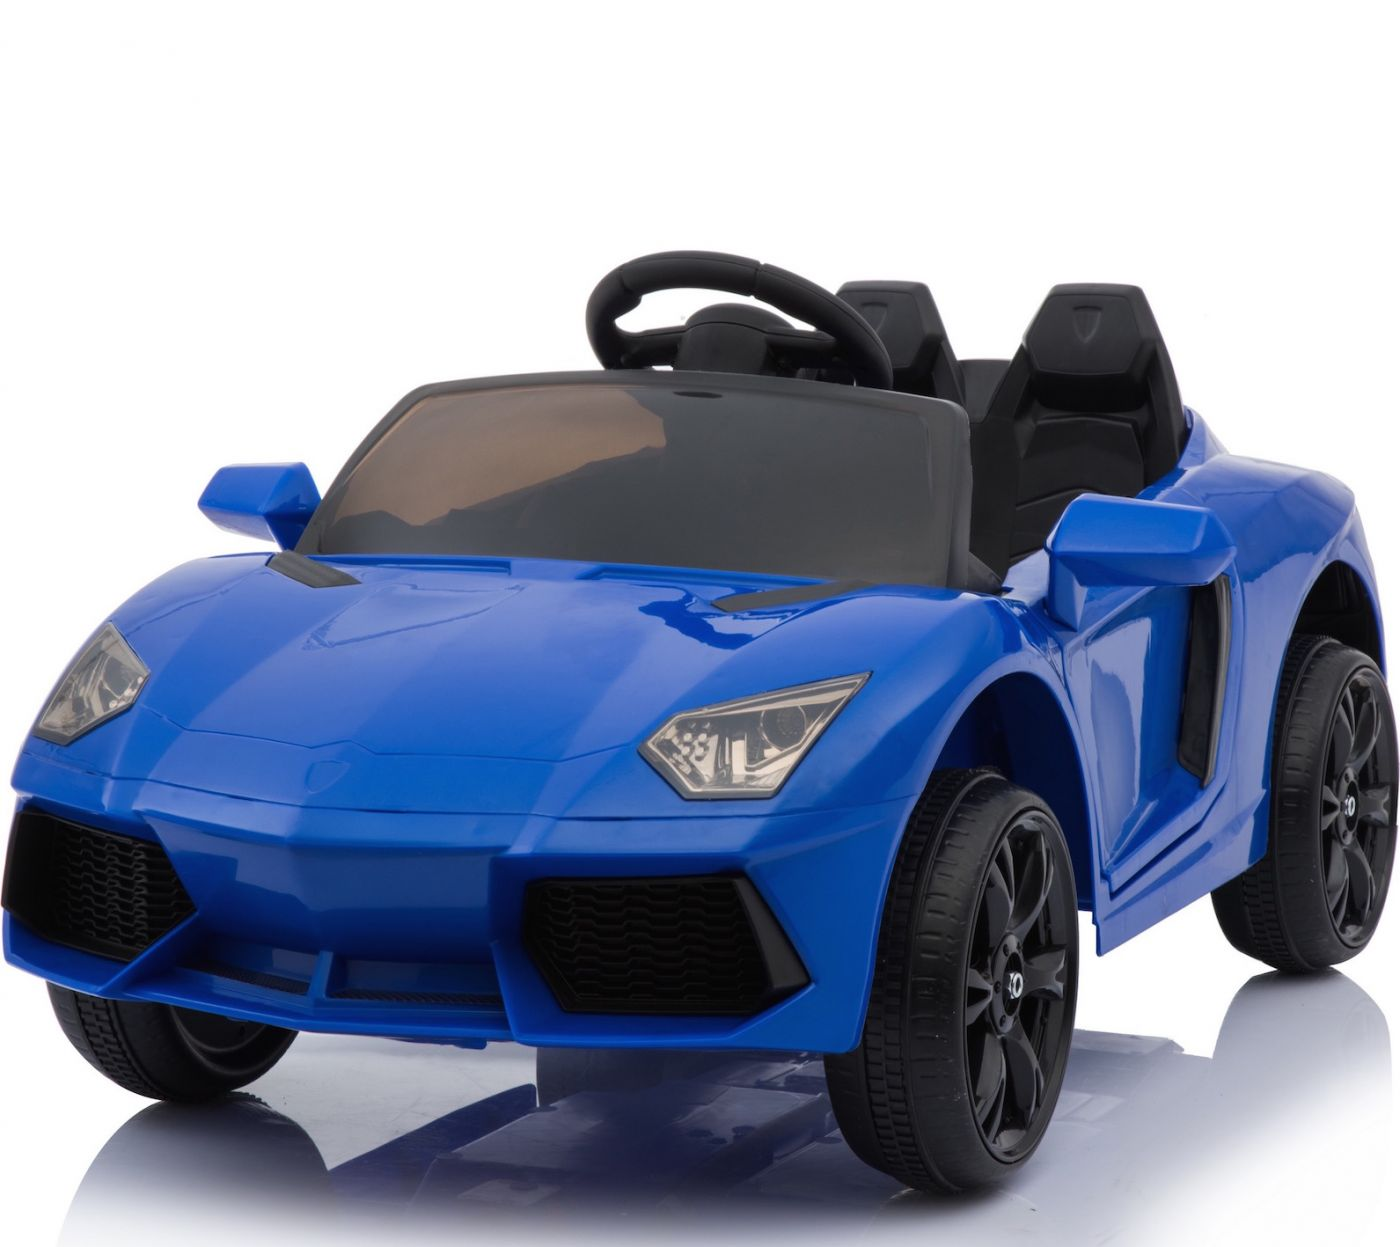 Lamborghini Aventador Style 12v Ride On Children S Electric Car